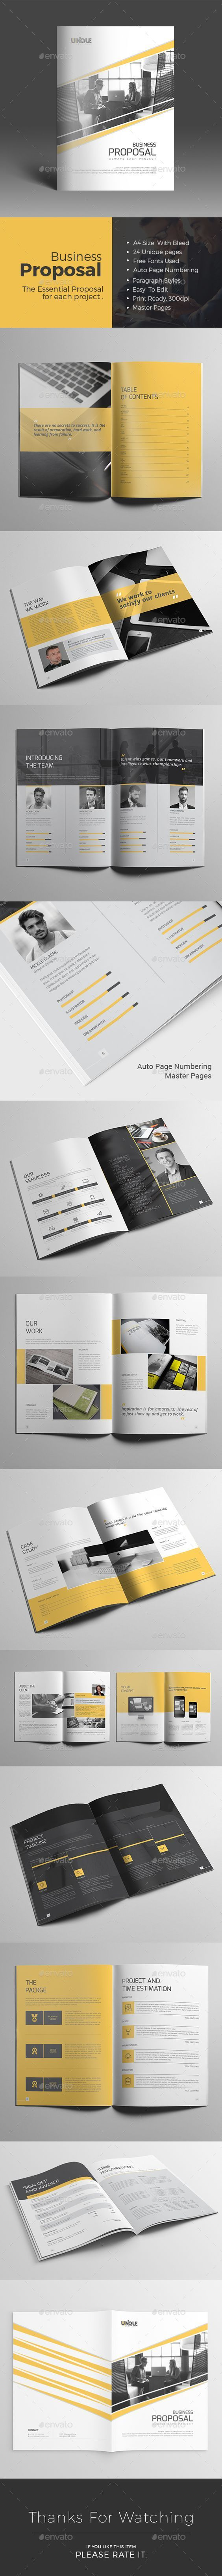 best business proposal sample ideas pinterest pages template indesign indd design download http graphicriver